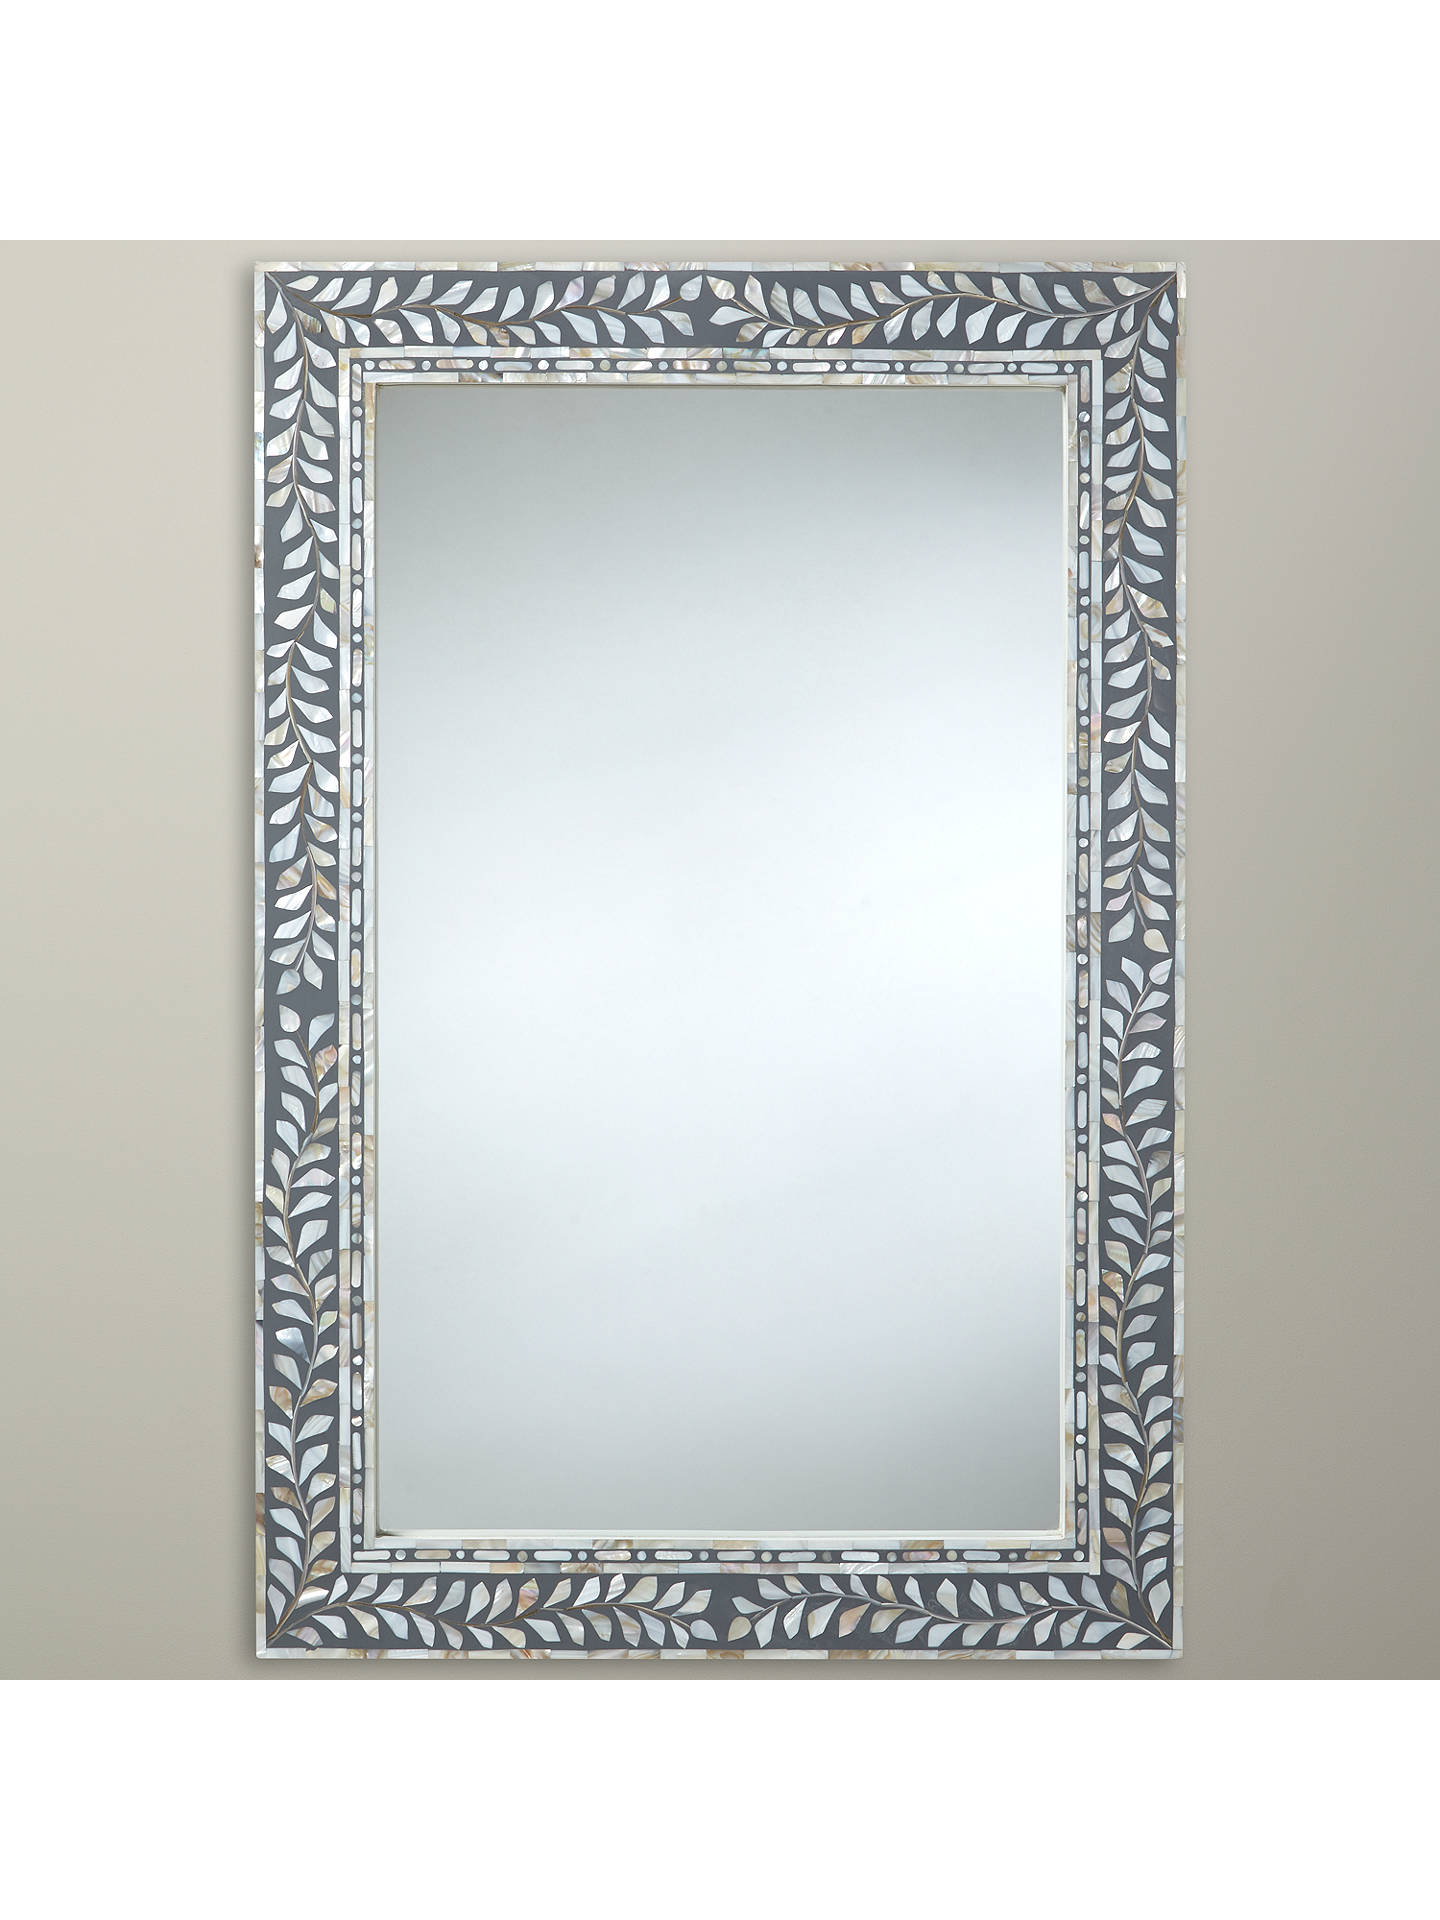 John Lewis Amp Partners Mother Of Pearl Mirror 60 X 90cm At